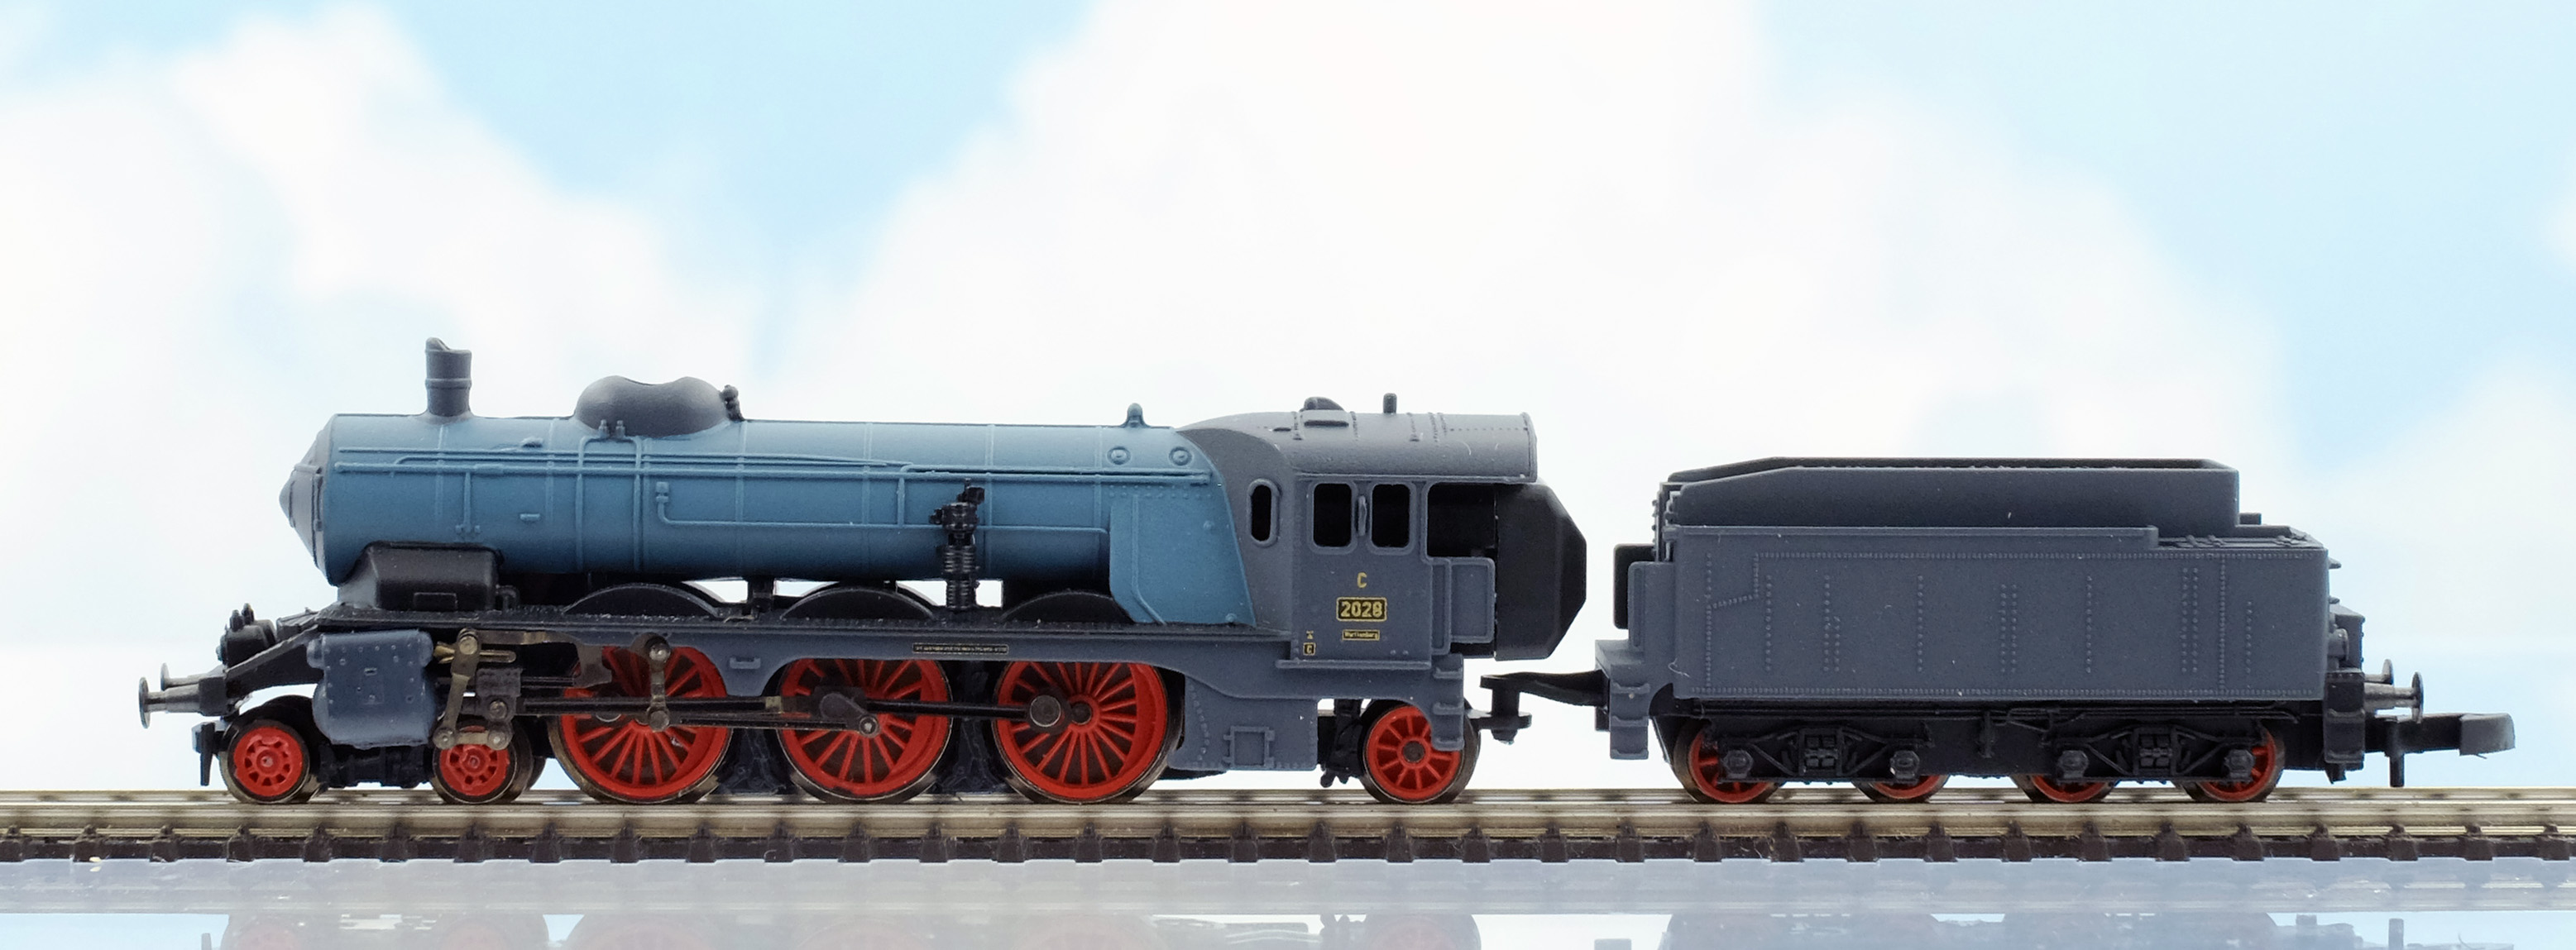 Marklin's newly released 88185 class 'C' express locomotive of the Royal  Wurttemberg State Railways features Era I paint scheme from 1915.